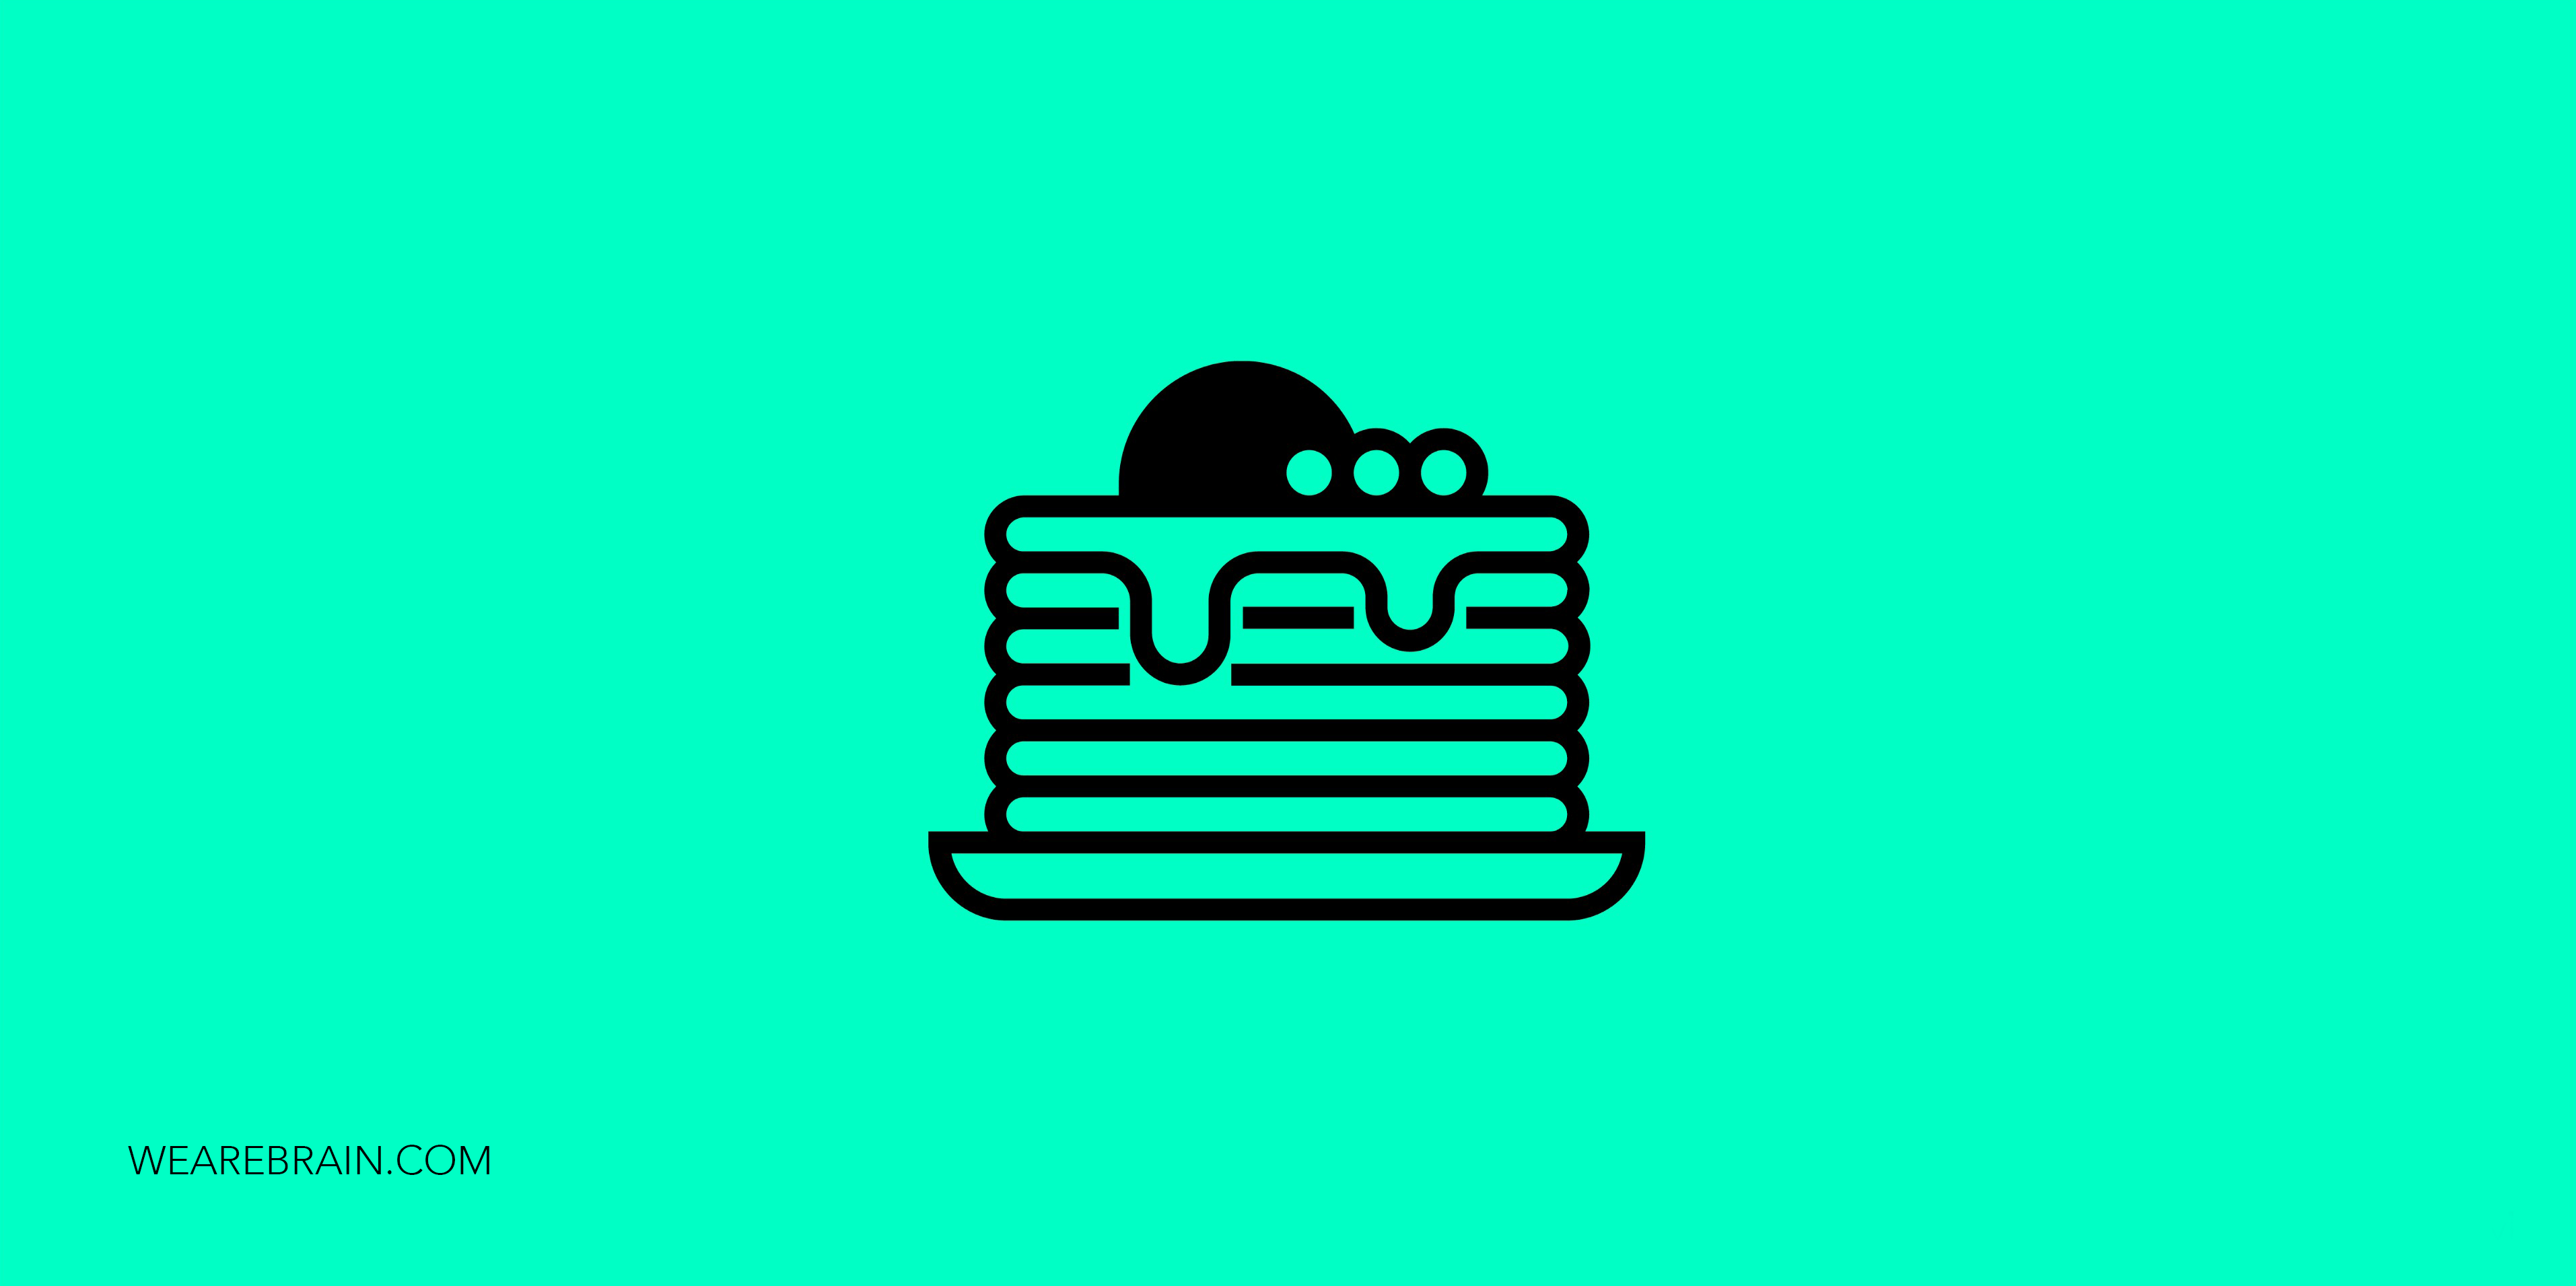 icon representing a plate with pancakes